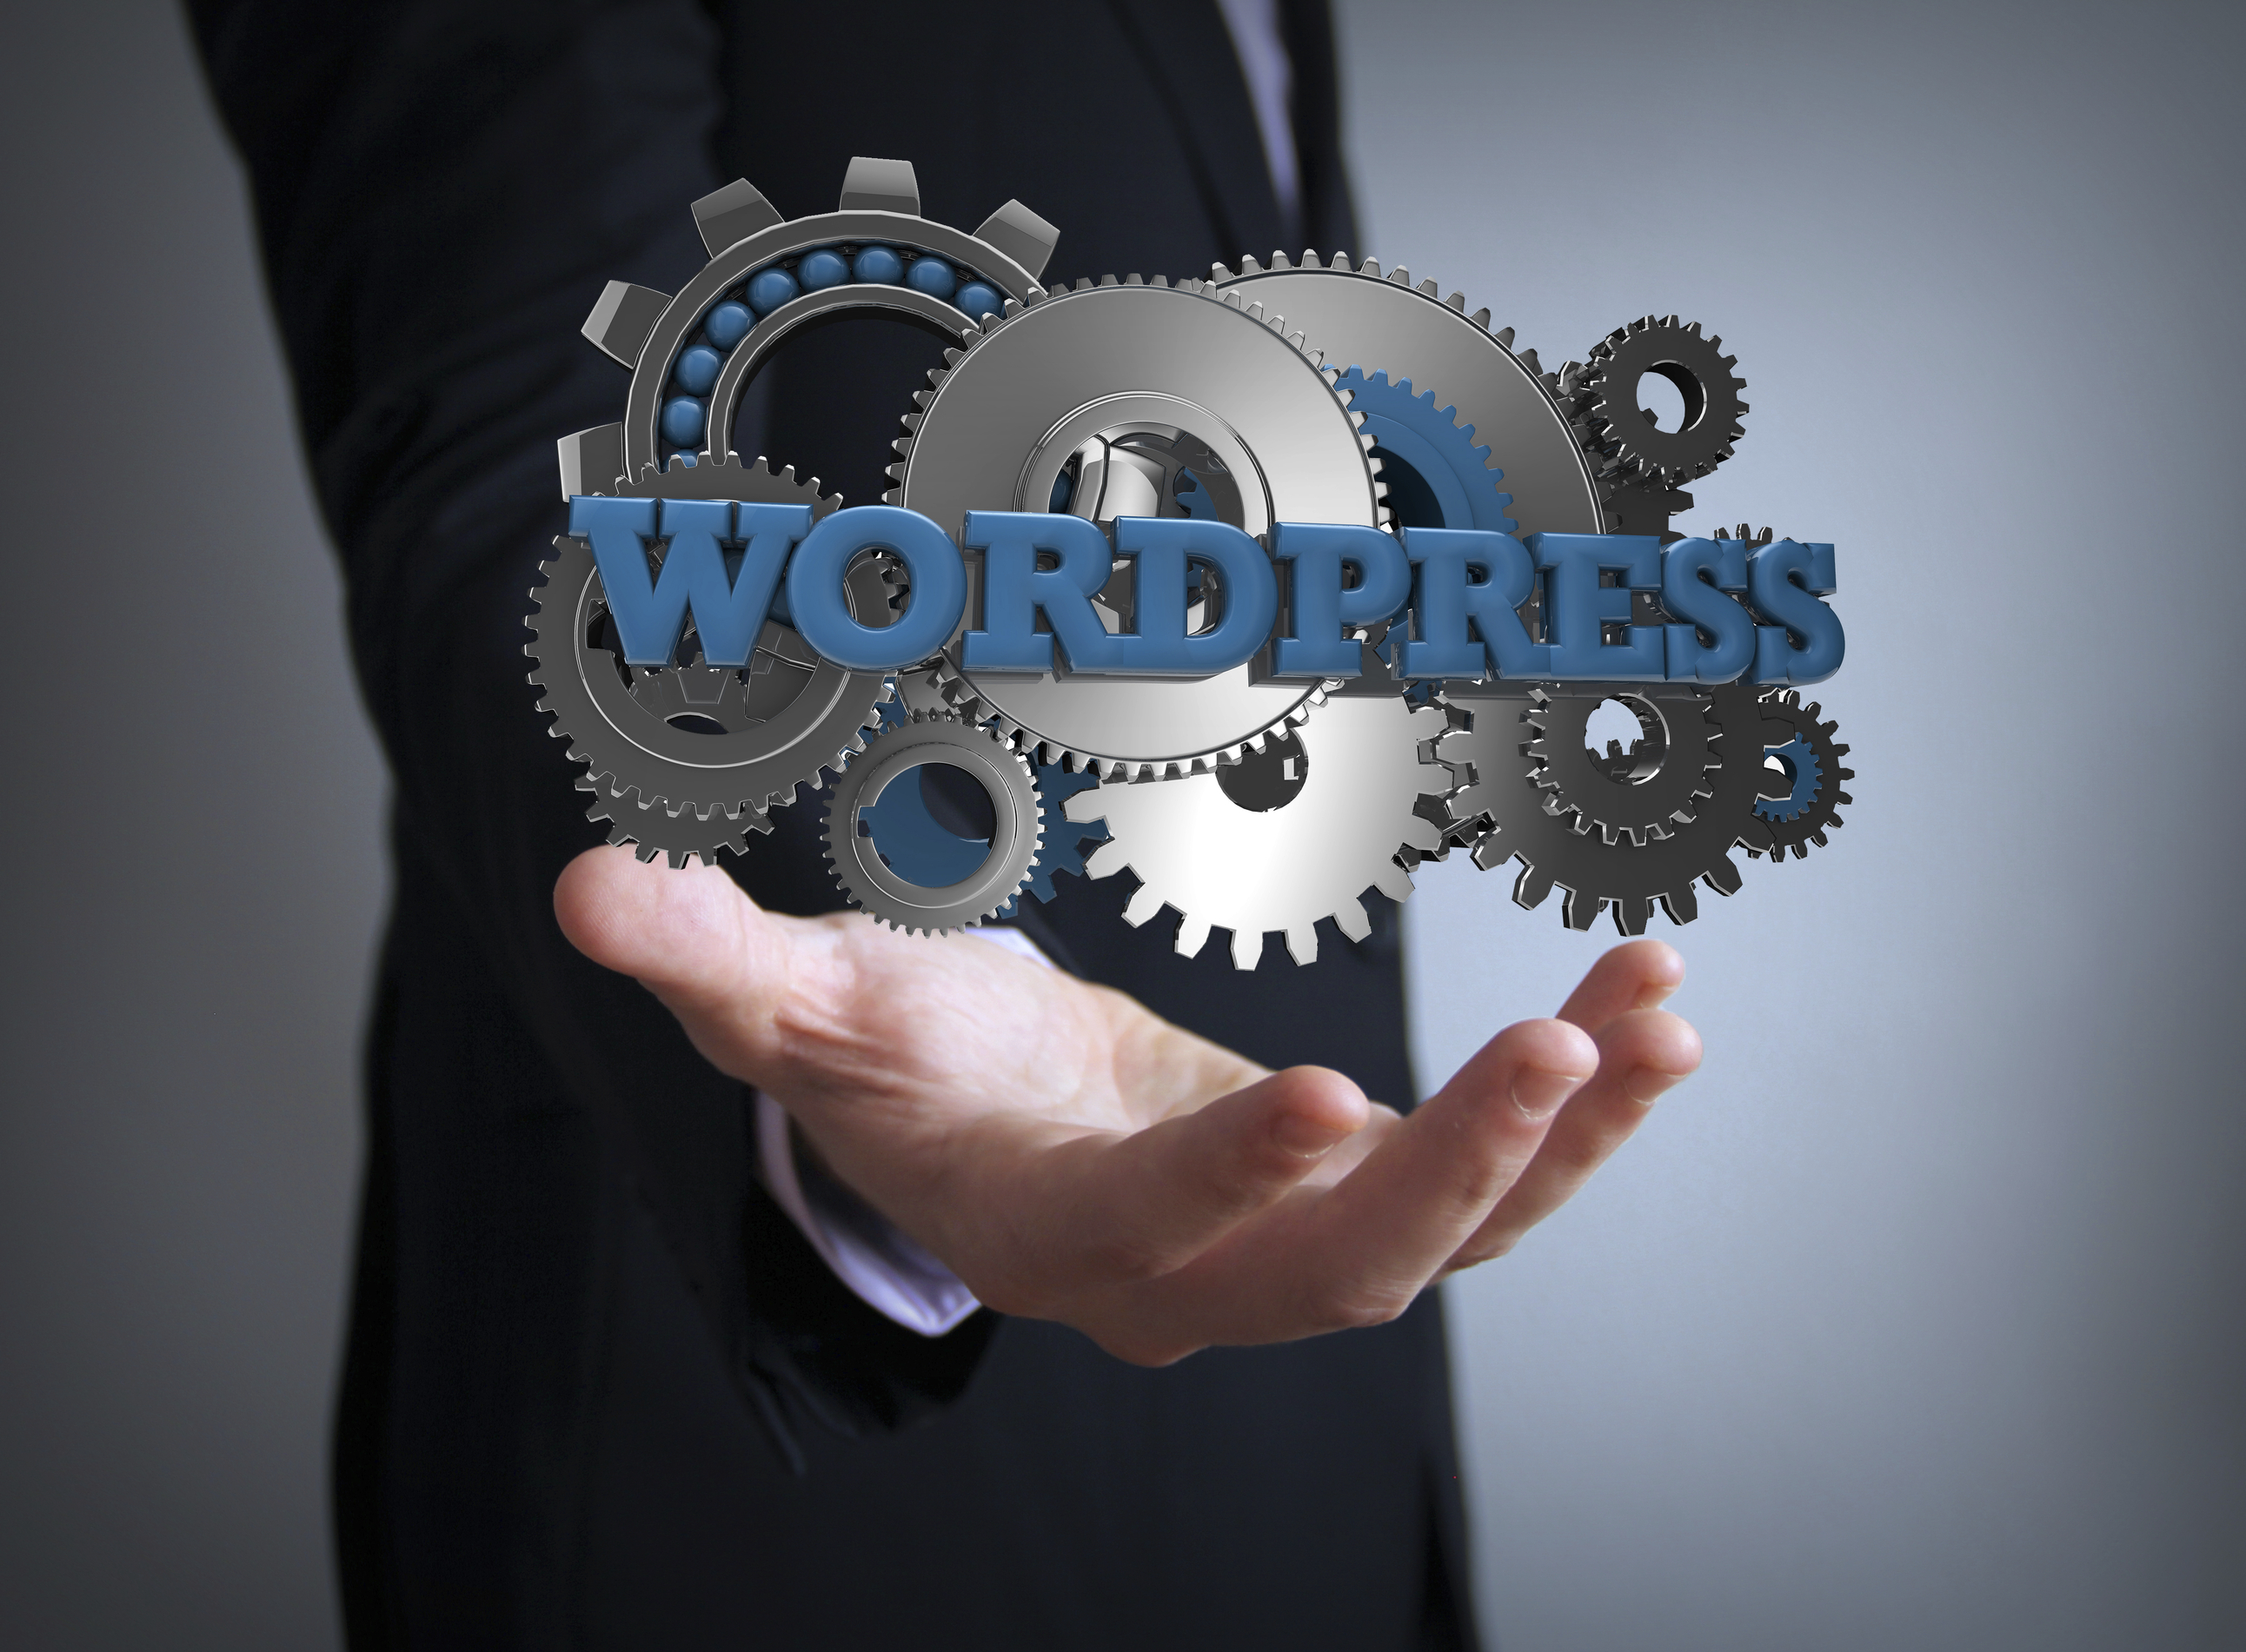 As with all development tasks, creating a WordPress module has a set of best practices to follow to ensure efficiency, security, and functionality.